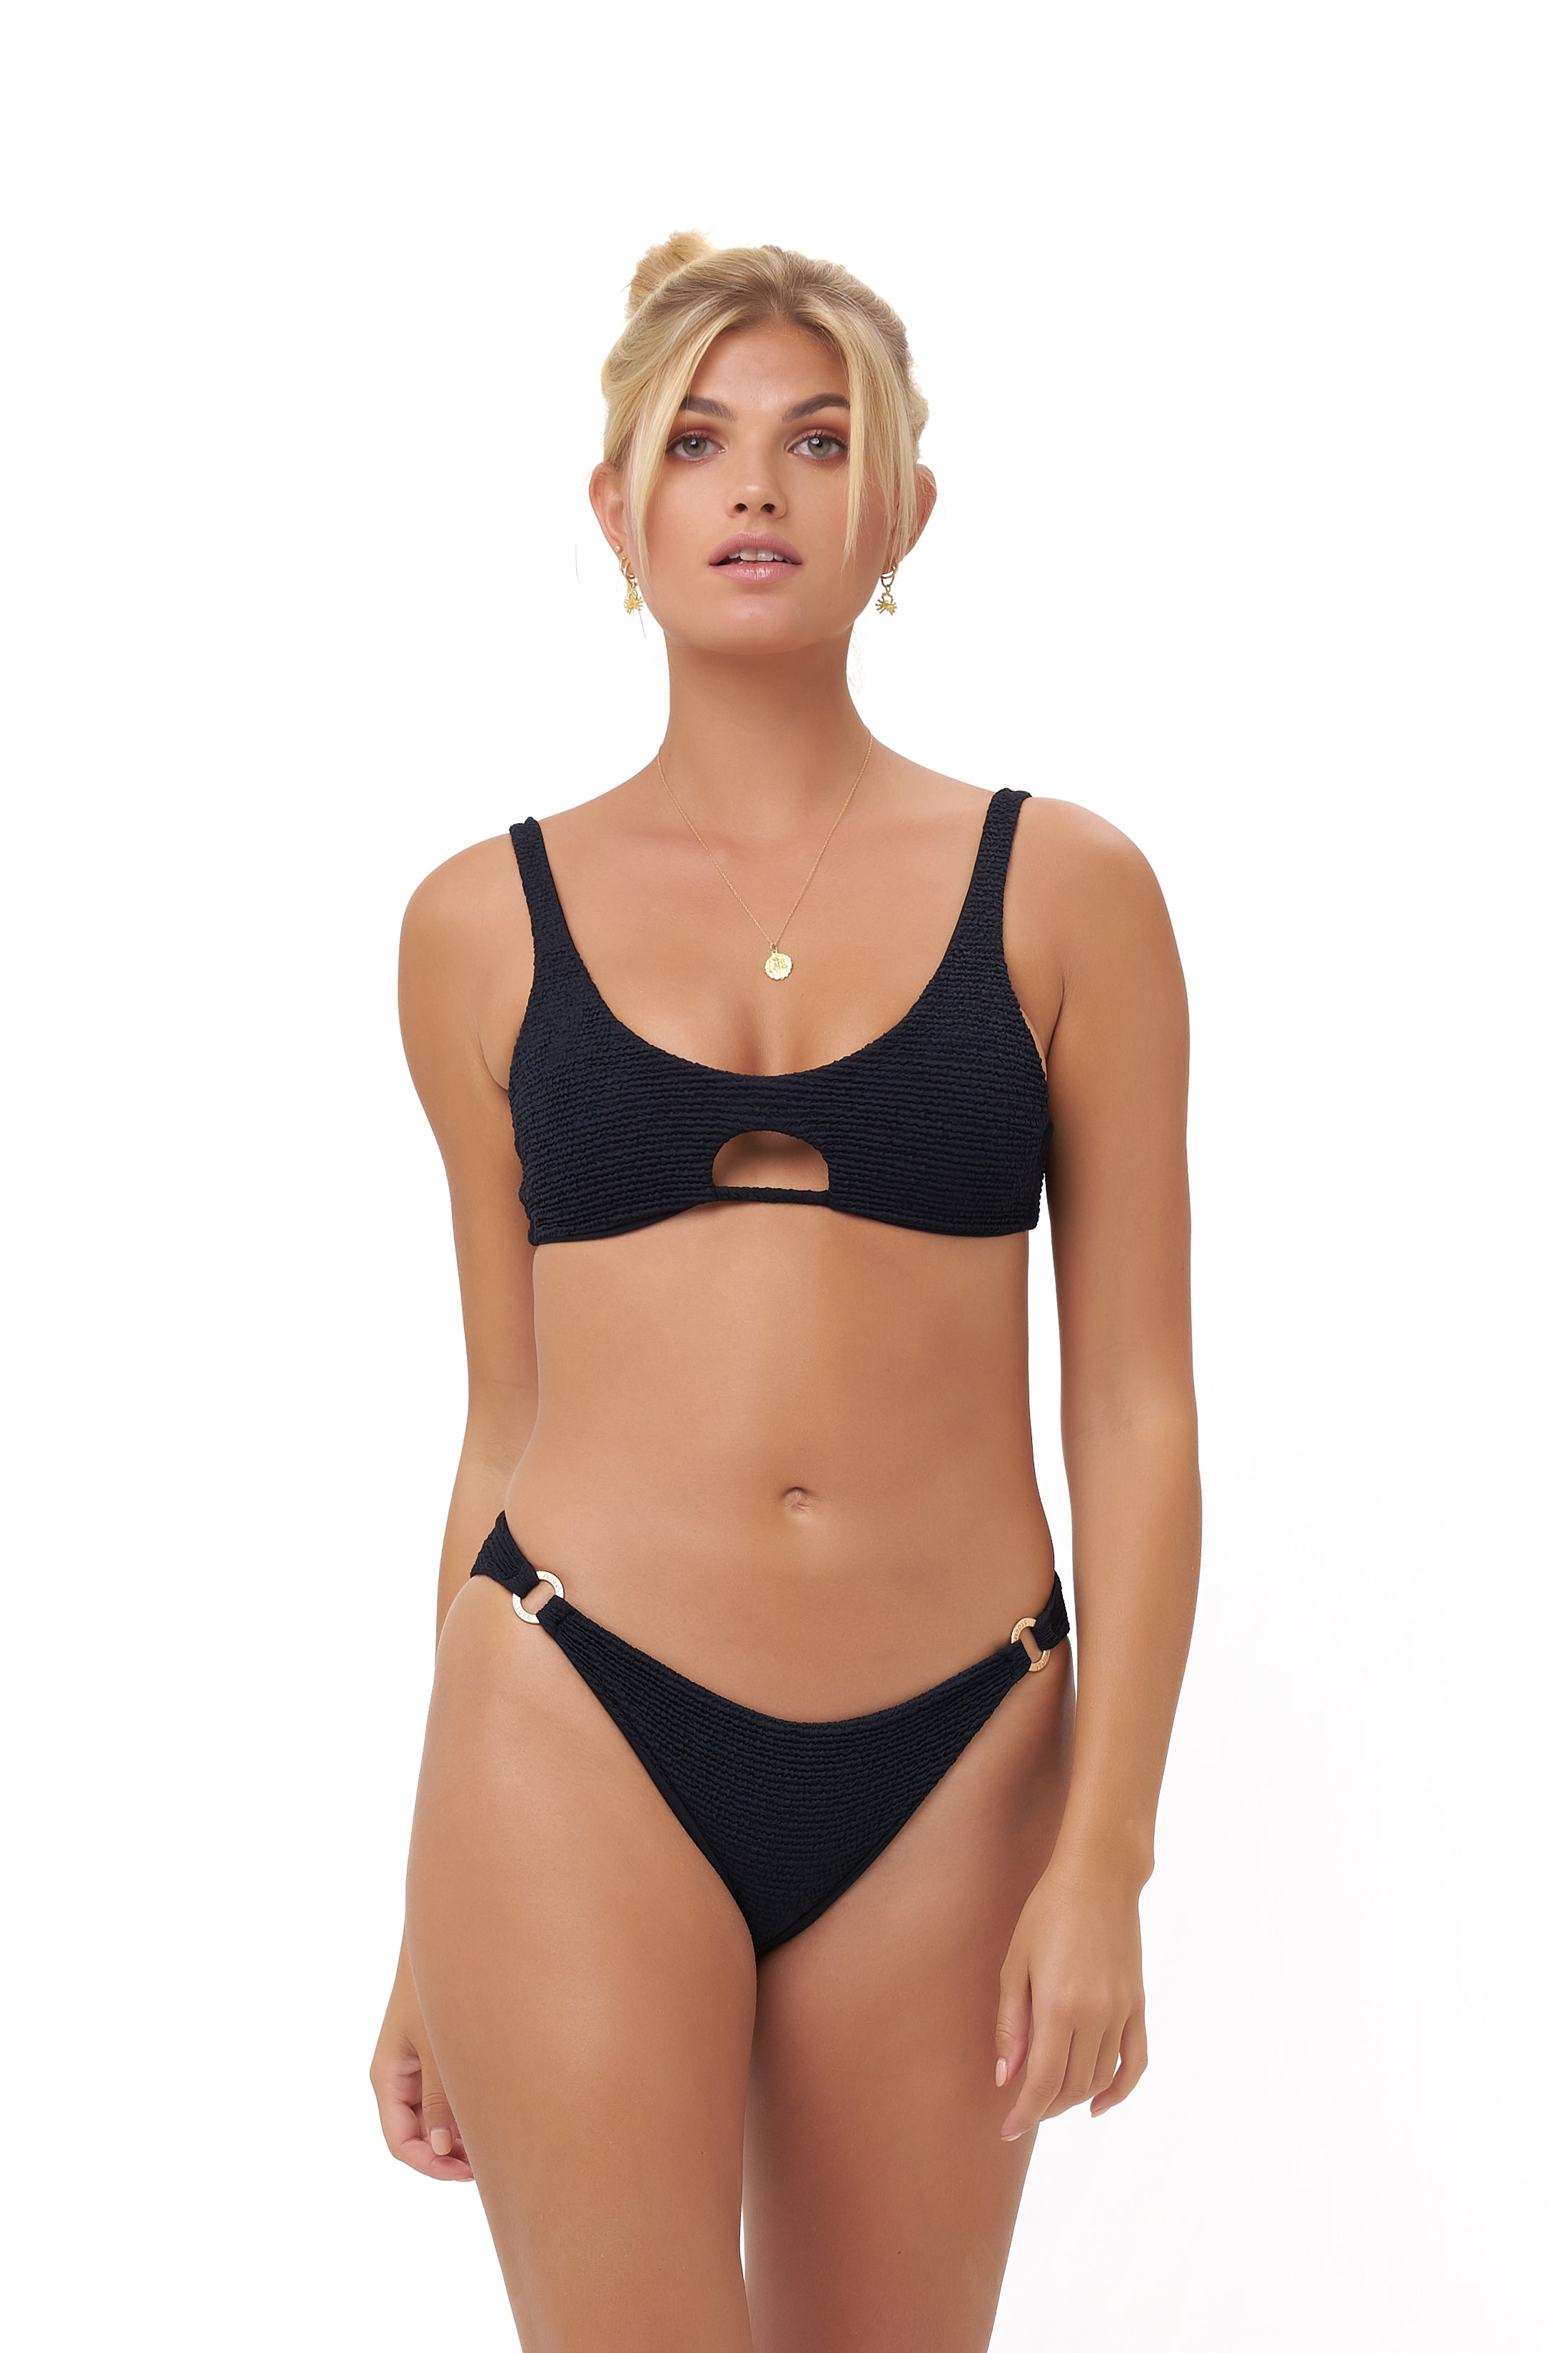 Storm Swimwear - Alicudi - Bikini Top in Storm Le Nuage Noir